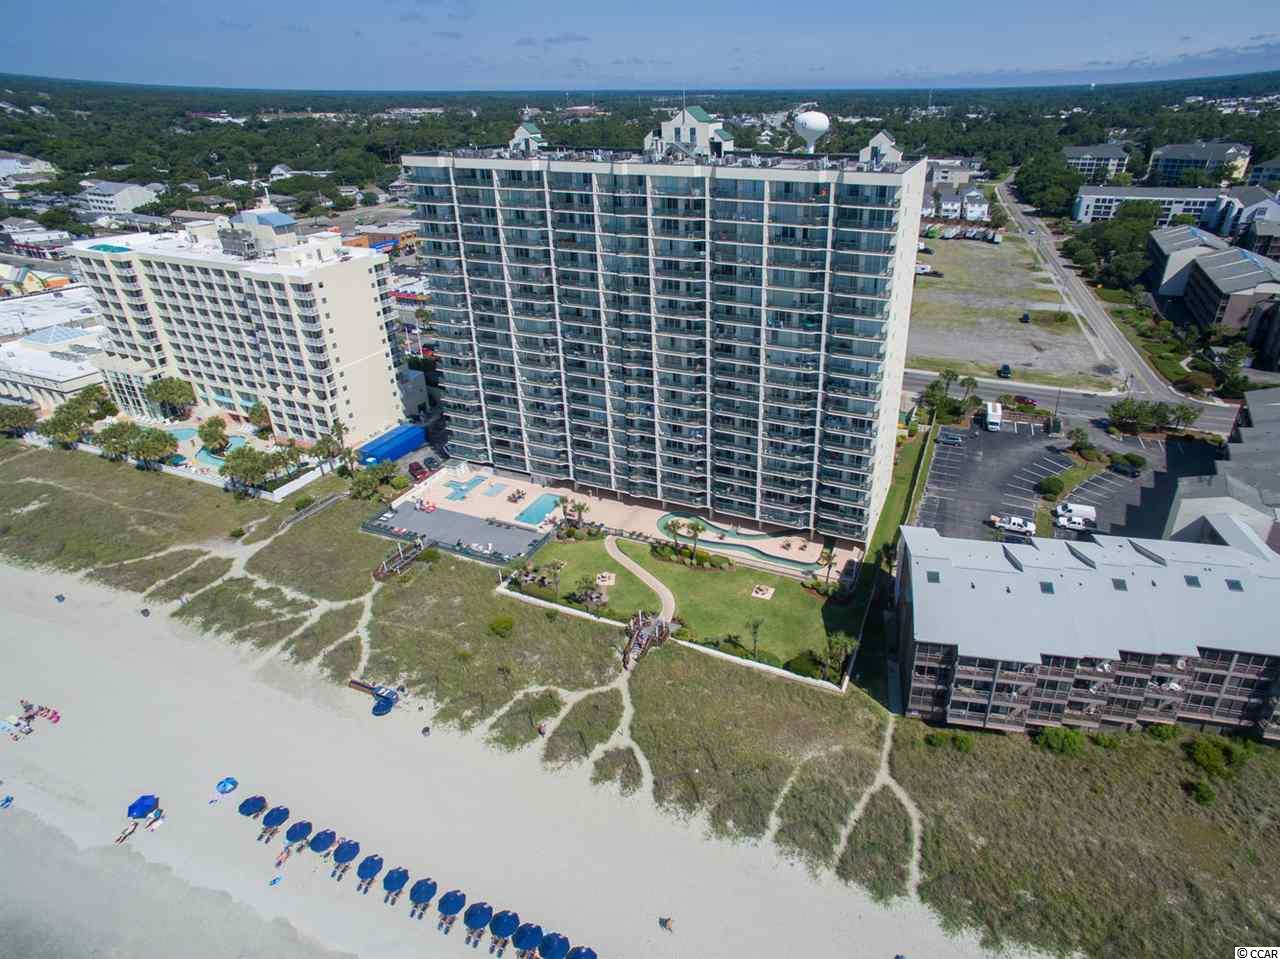 Oceanfront, 3 bedroom, 3 bathroom condominium in popular Drake building. Outdoor pool, heated under-building enclosed pool, lazy river, whirlpool spa, baby pool, exercise room, and on-site parking garage. Property is located on one of the few blocks zoned for condominiums between the low density single family zoning of Tilghman Estates and Main Street with its shag clubs, shops, restaurants, pavilion, and rides. Square footage and other information not guaranteed. Buyer responsible for verification.